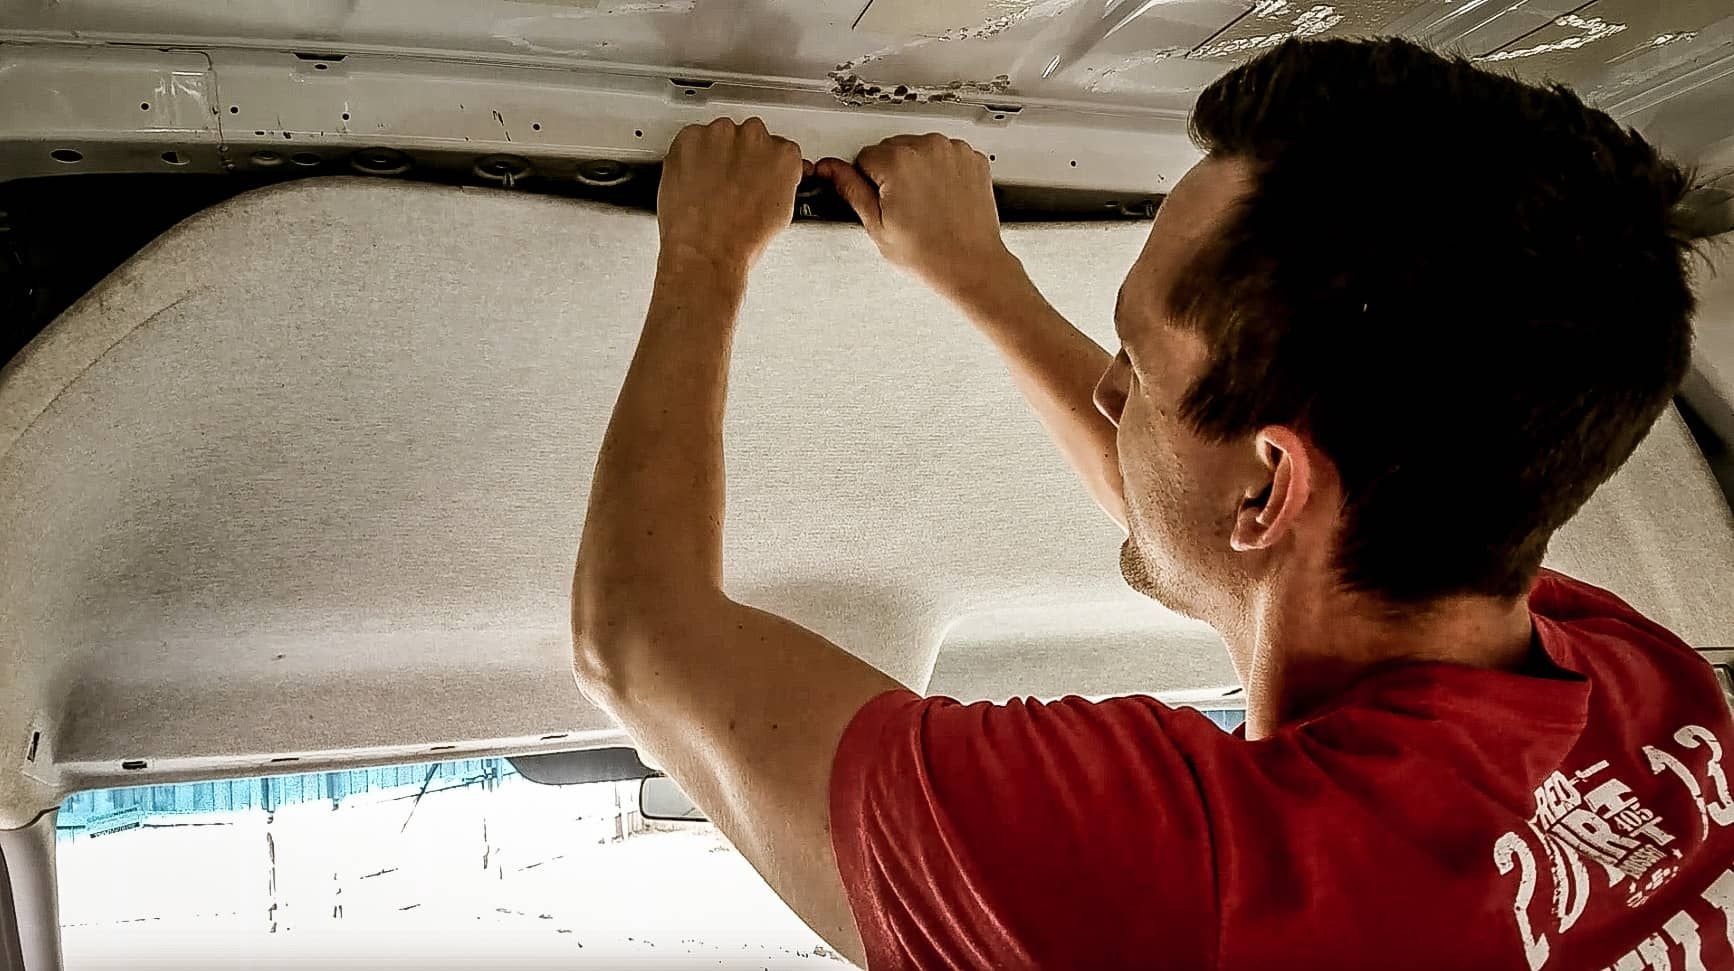 Campervan Build: Removing the Headliner in a Mercedes Sprinter